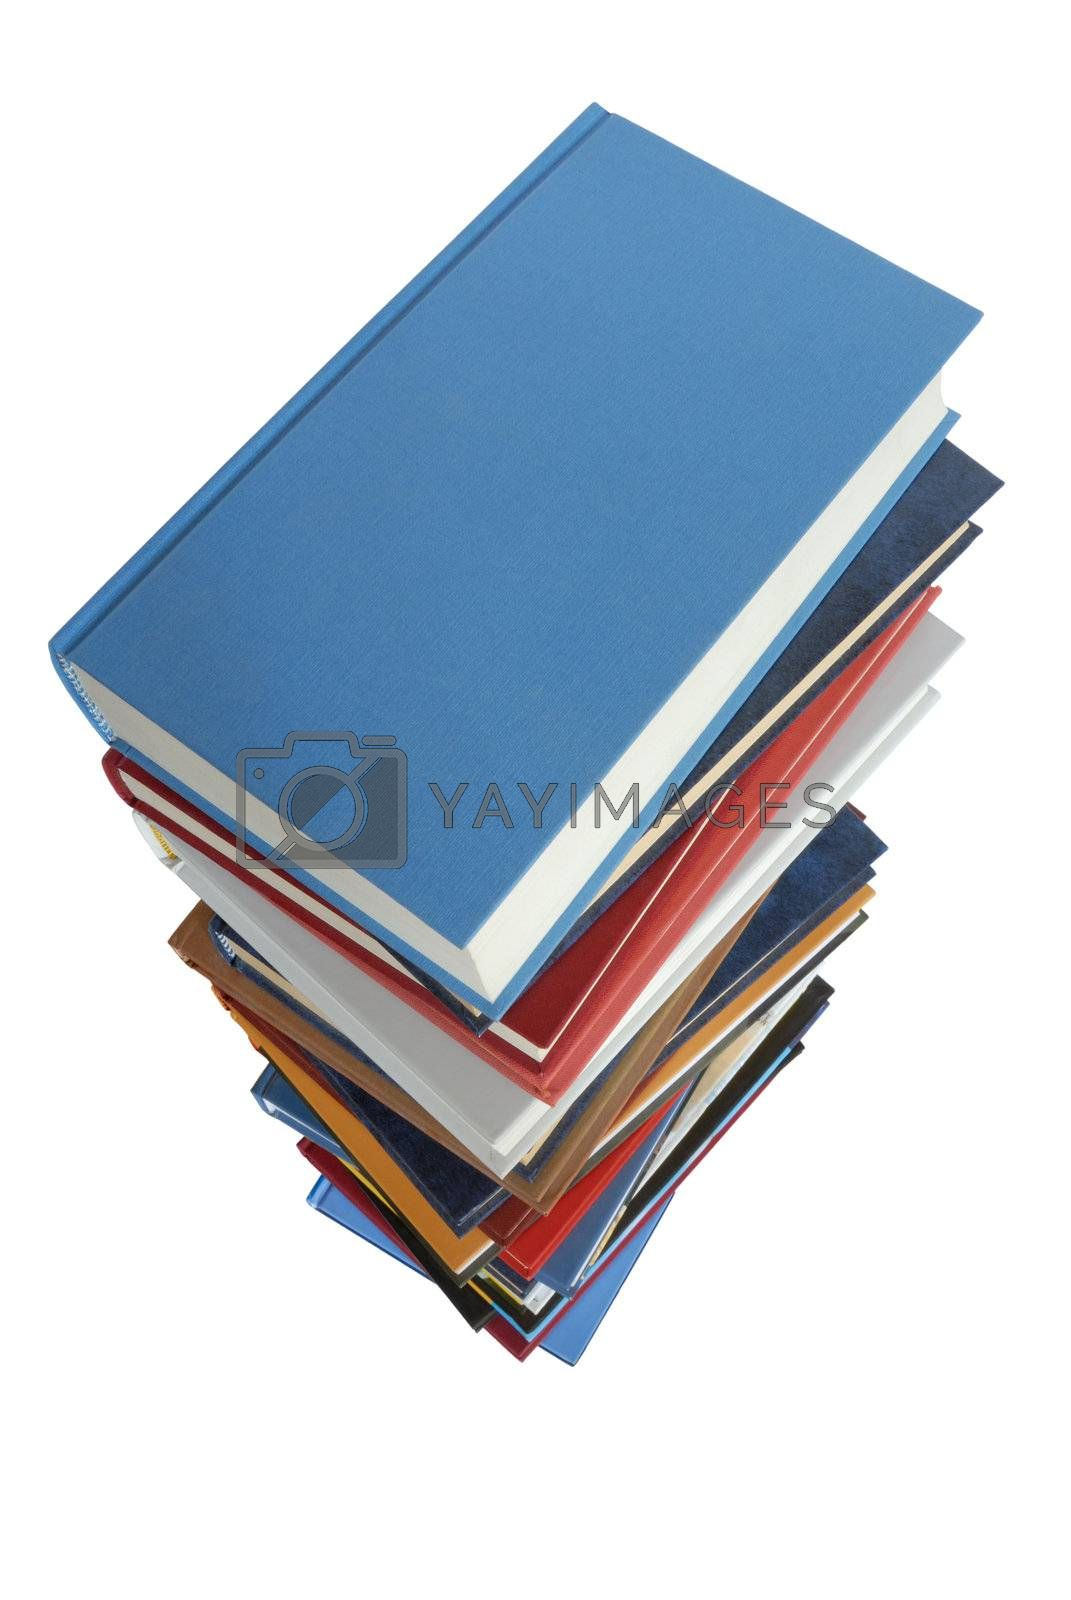 High books stack seen from above,  isolated on white background